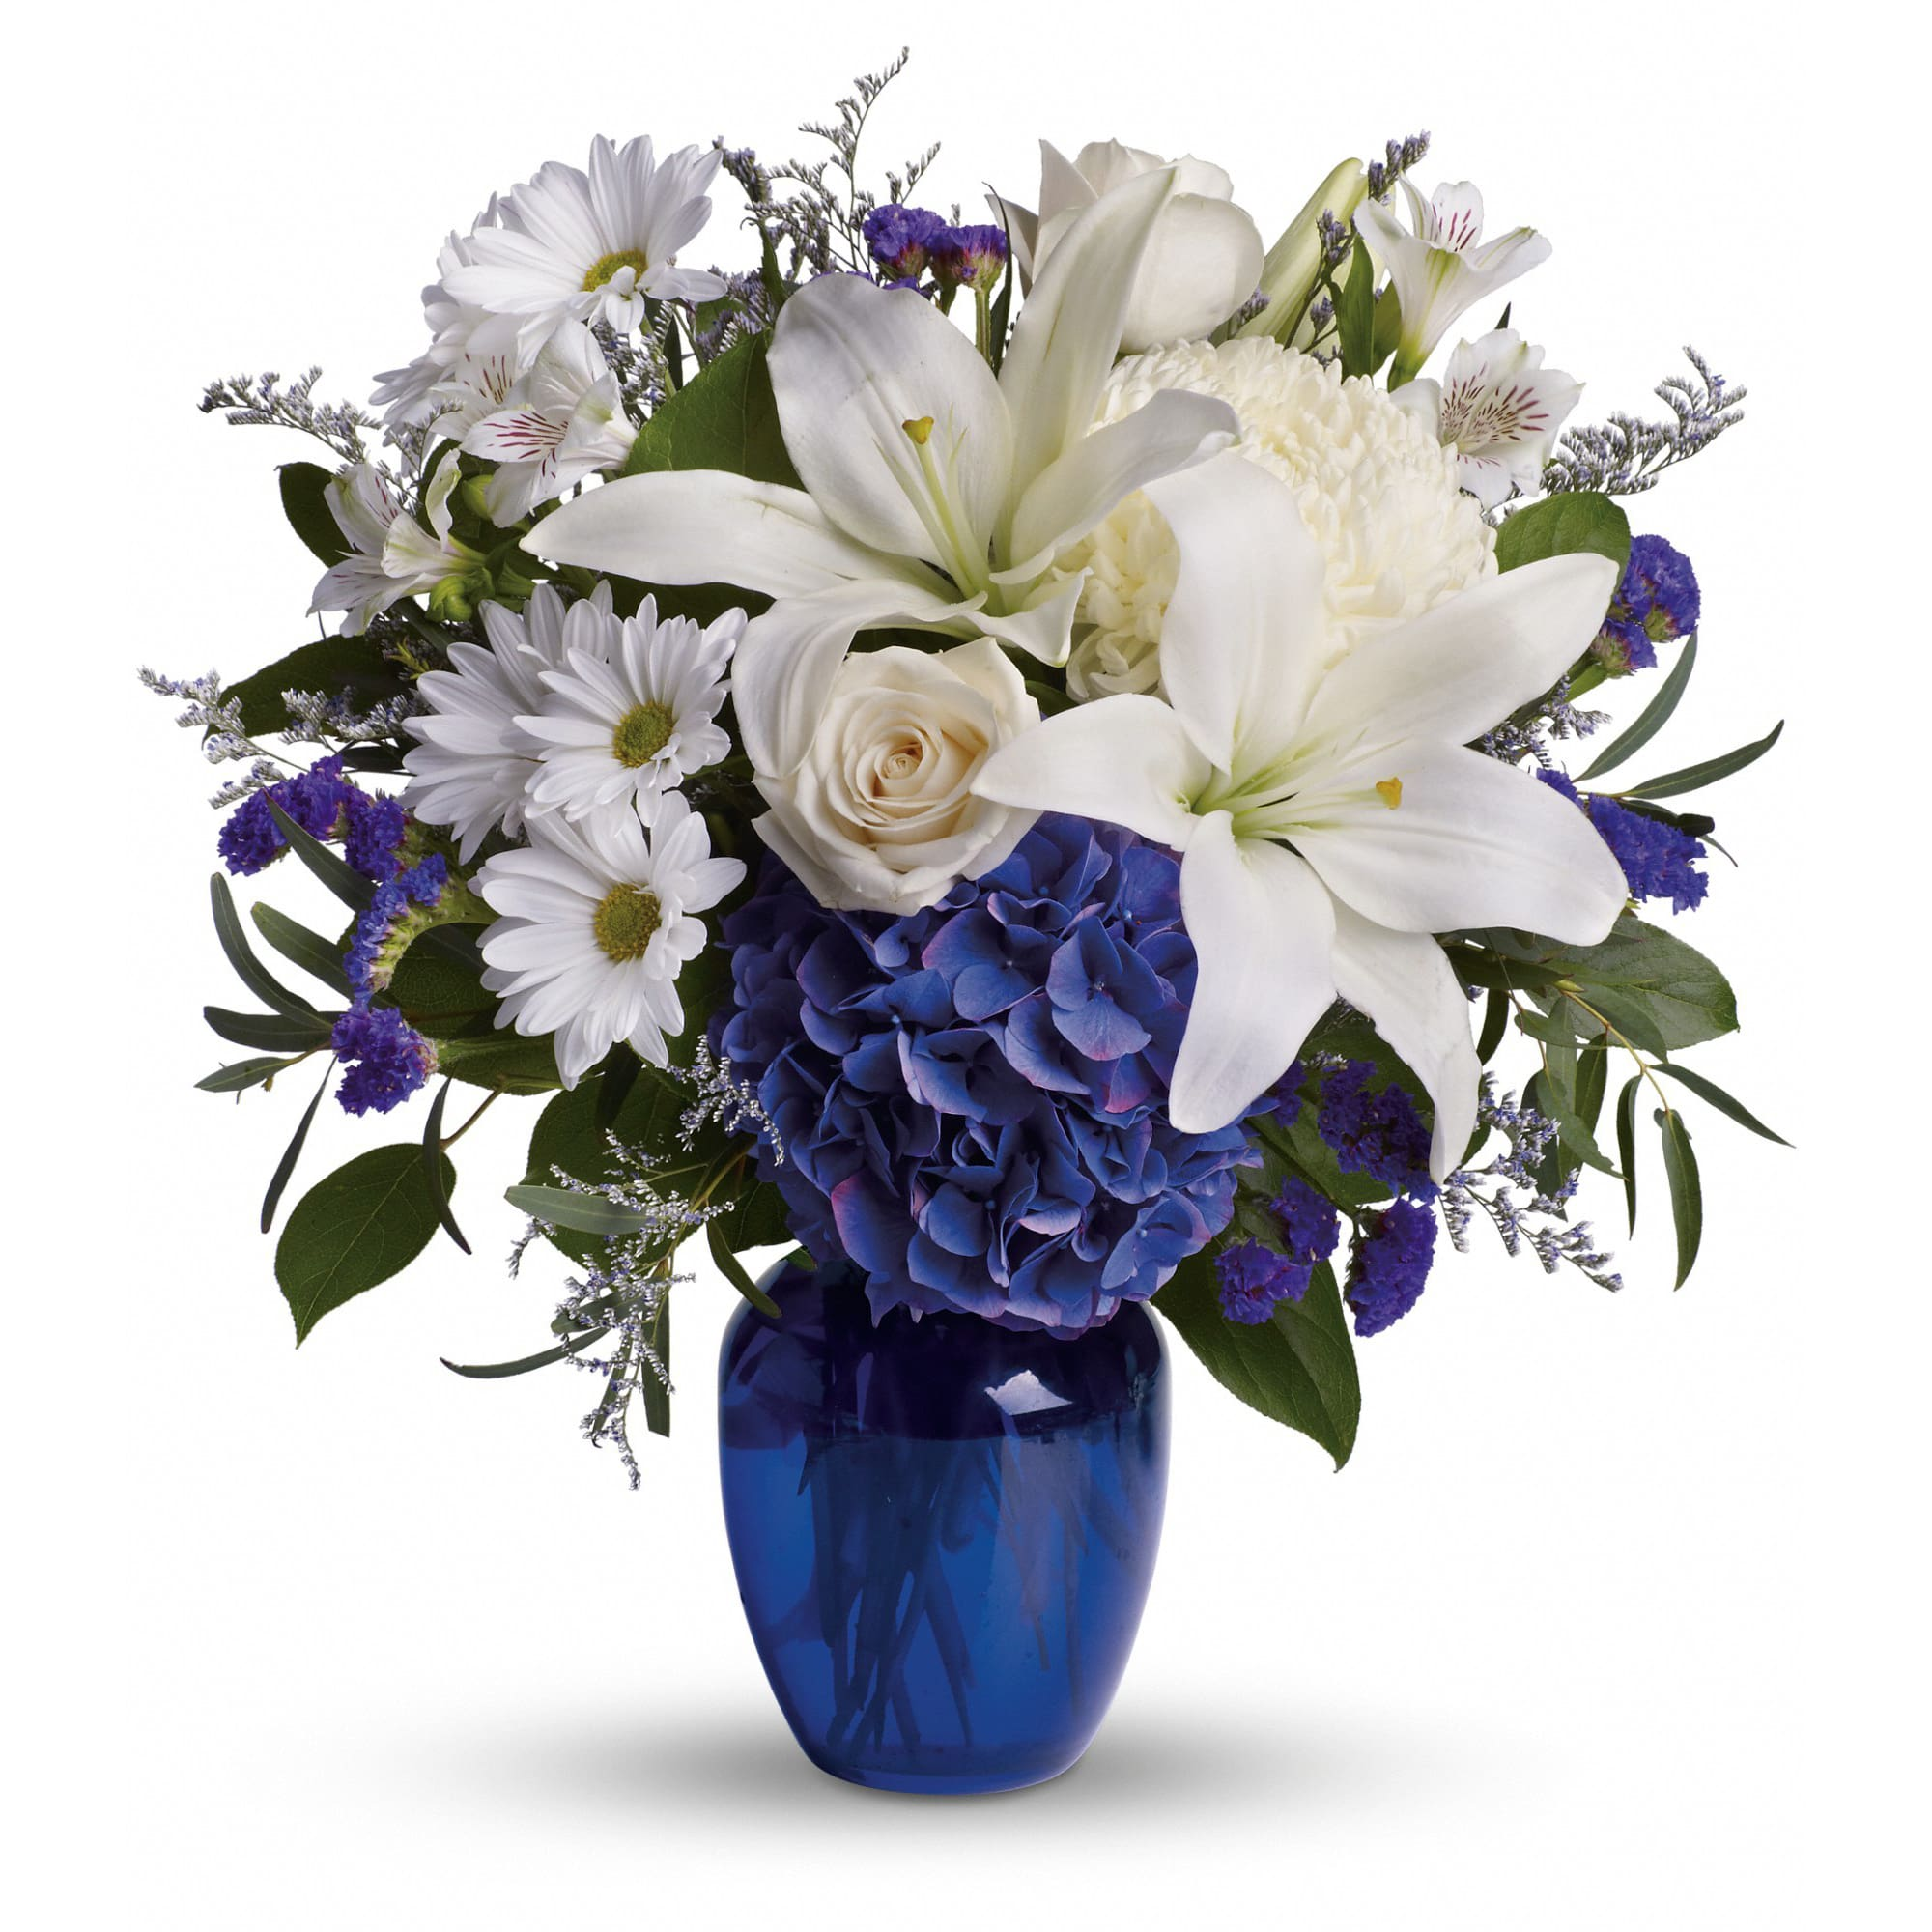 Beautiful In Blue By Teleflora In Bath Me Hawkes Flowers Gifts